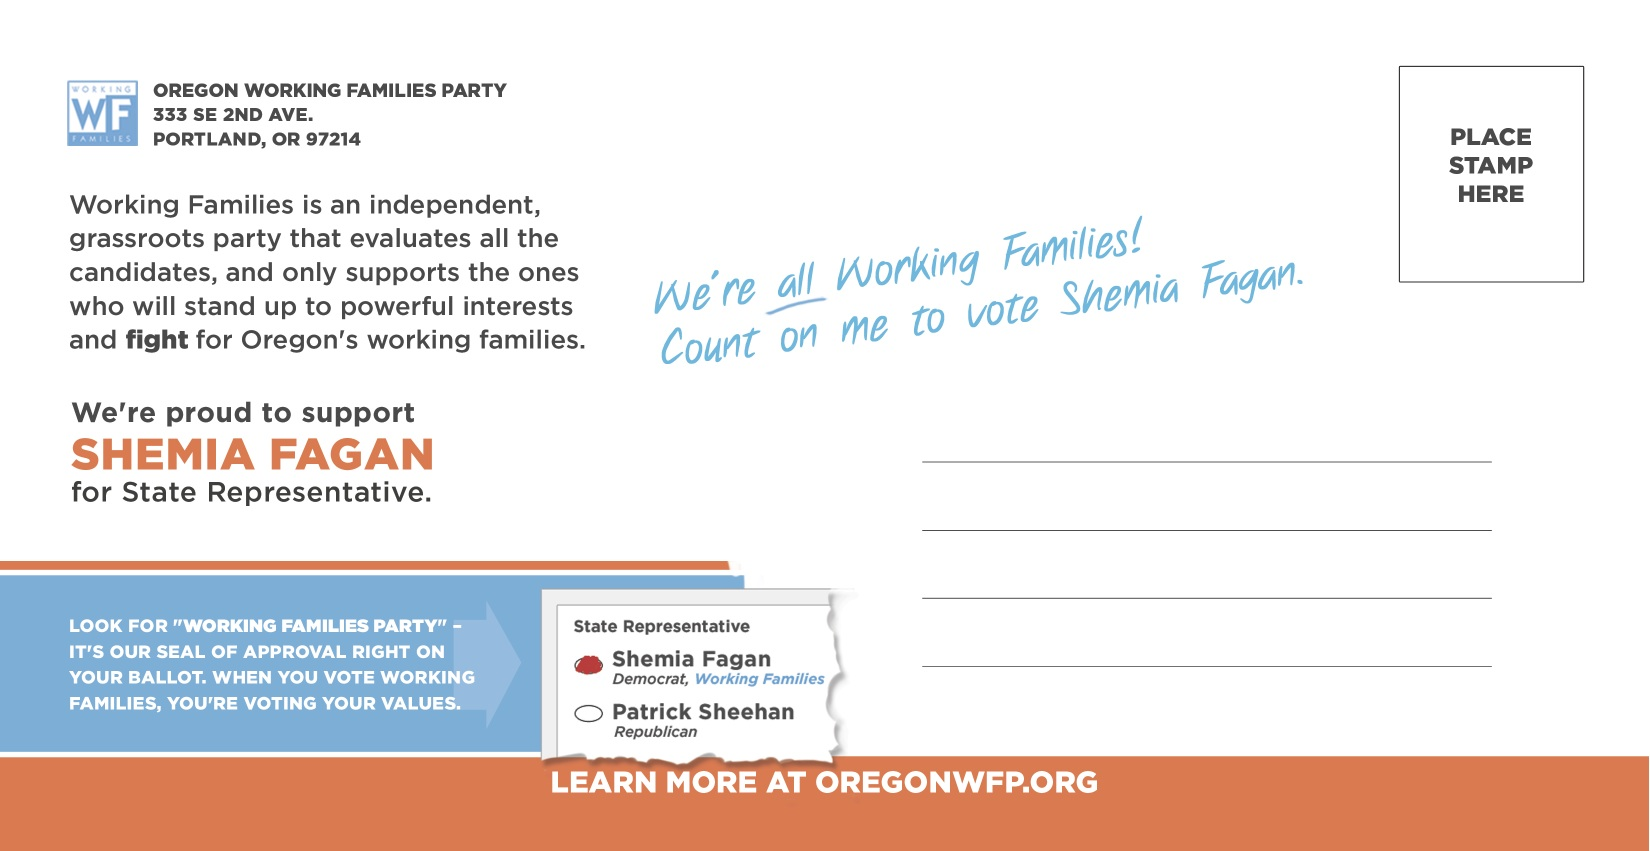 Shemia Fagan - Working Families Party - Campaign Mailer (opposite side)